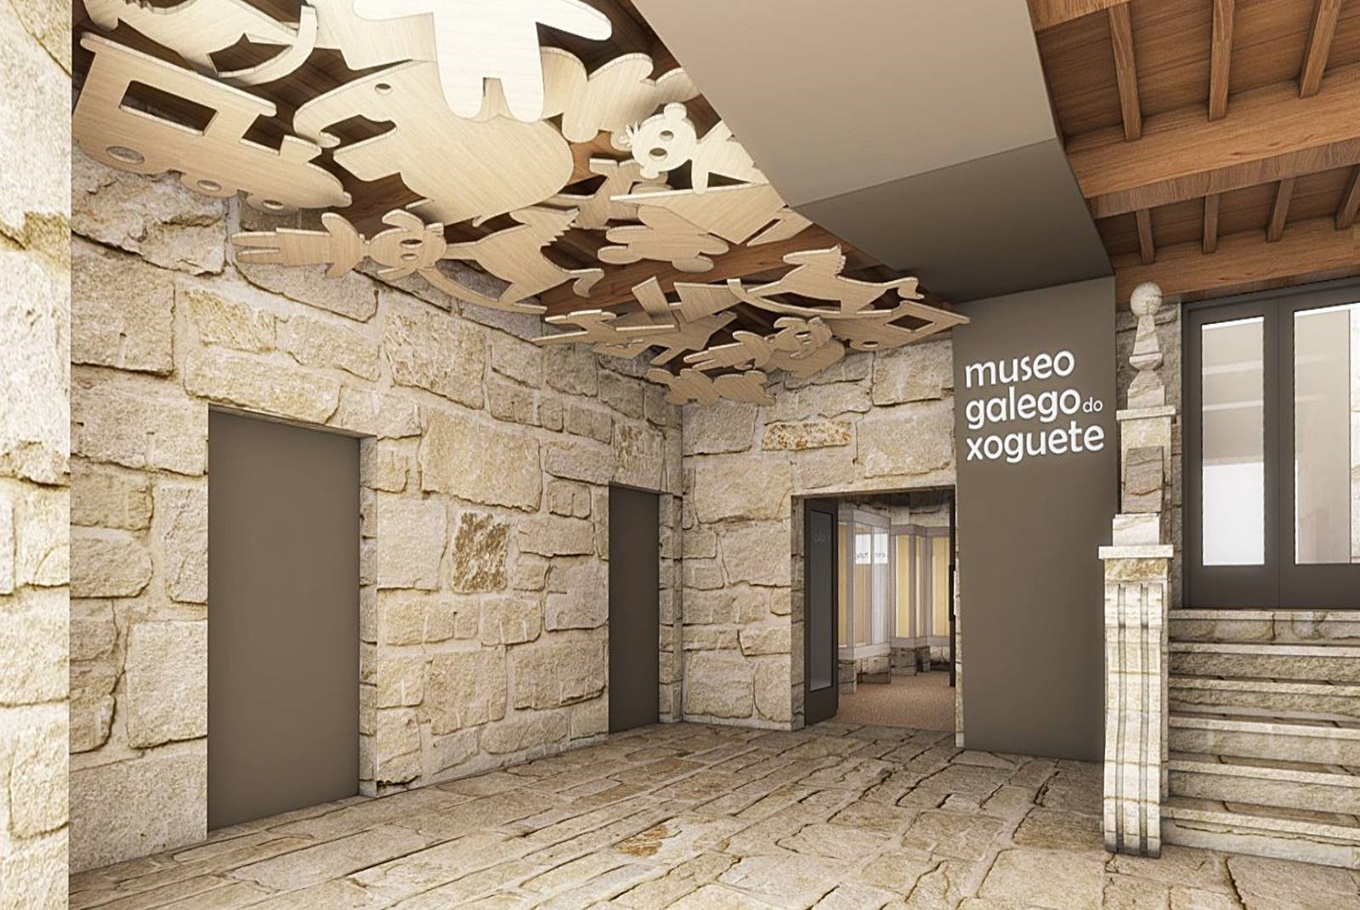 Museo Galego do Xoguete/Museo Gallego del Juguete